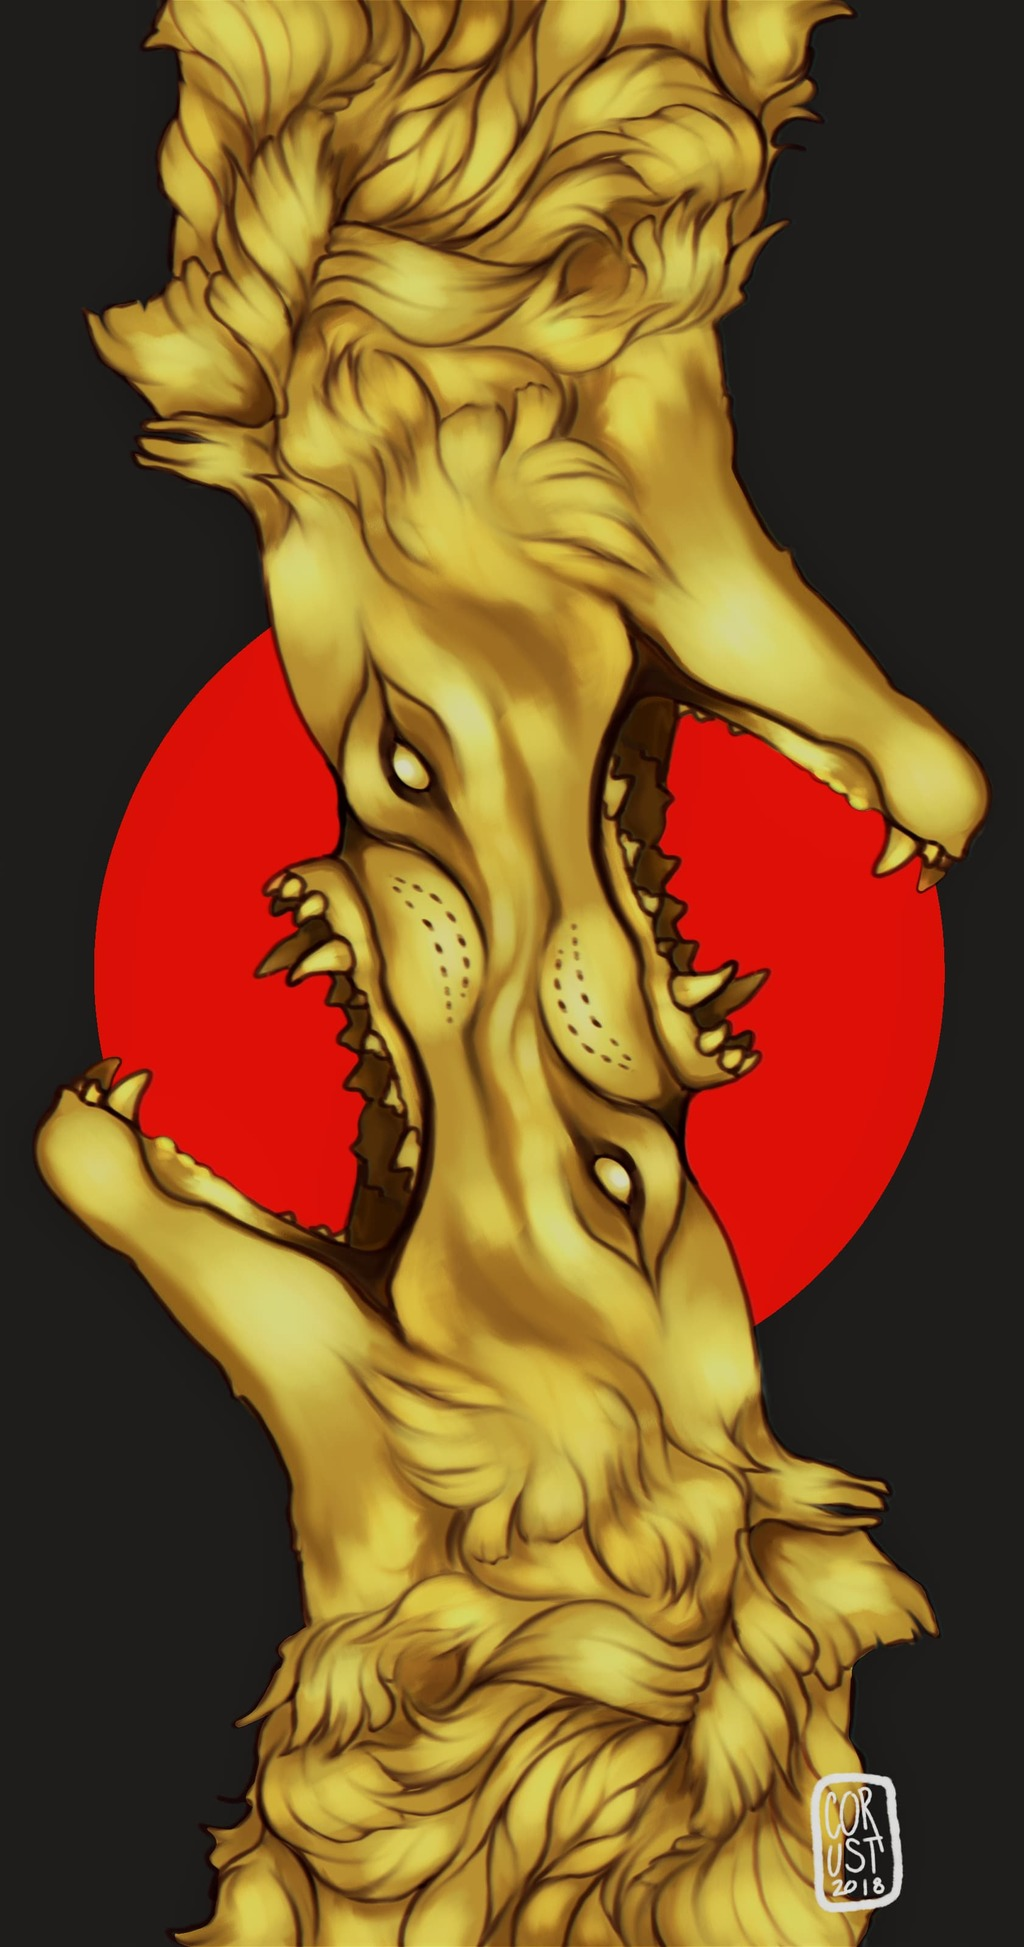 Most recent image: Golden Dogs